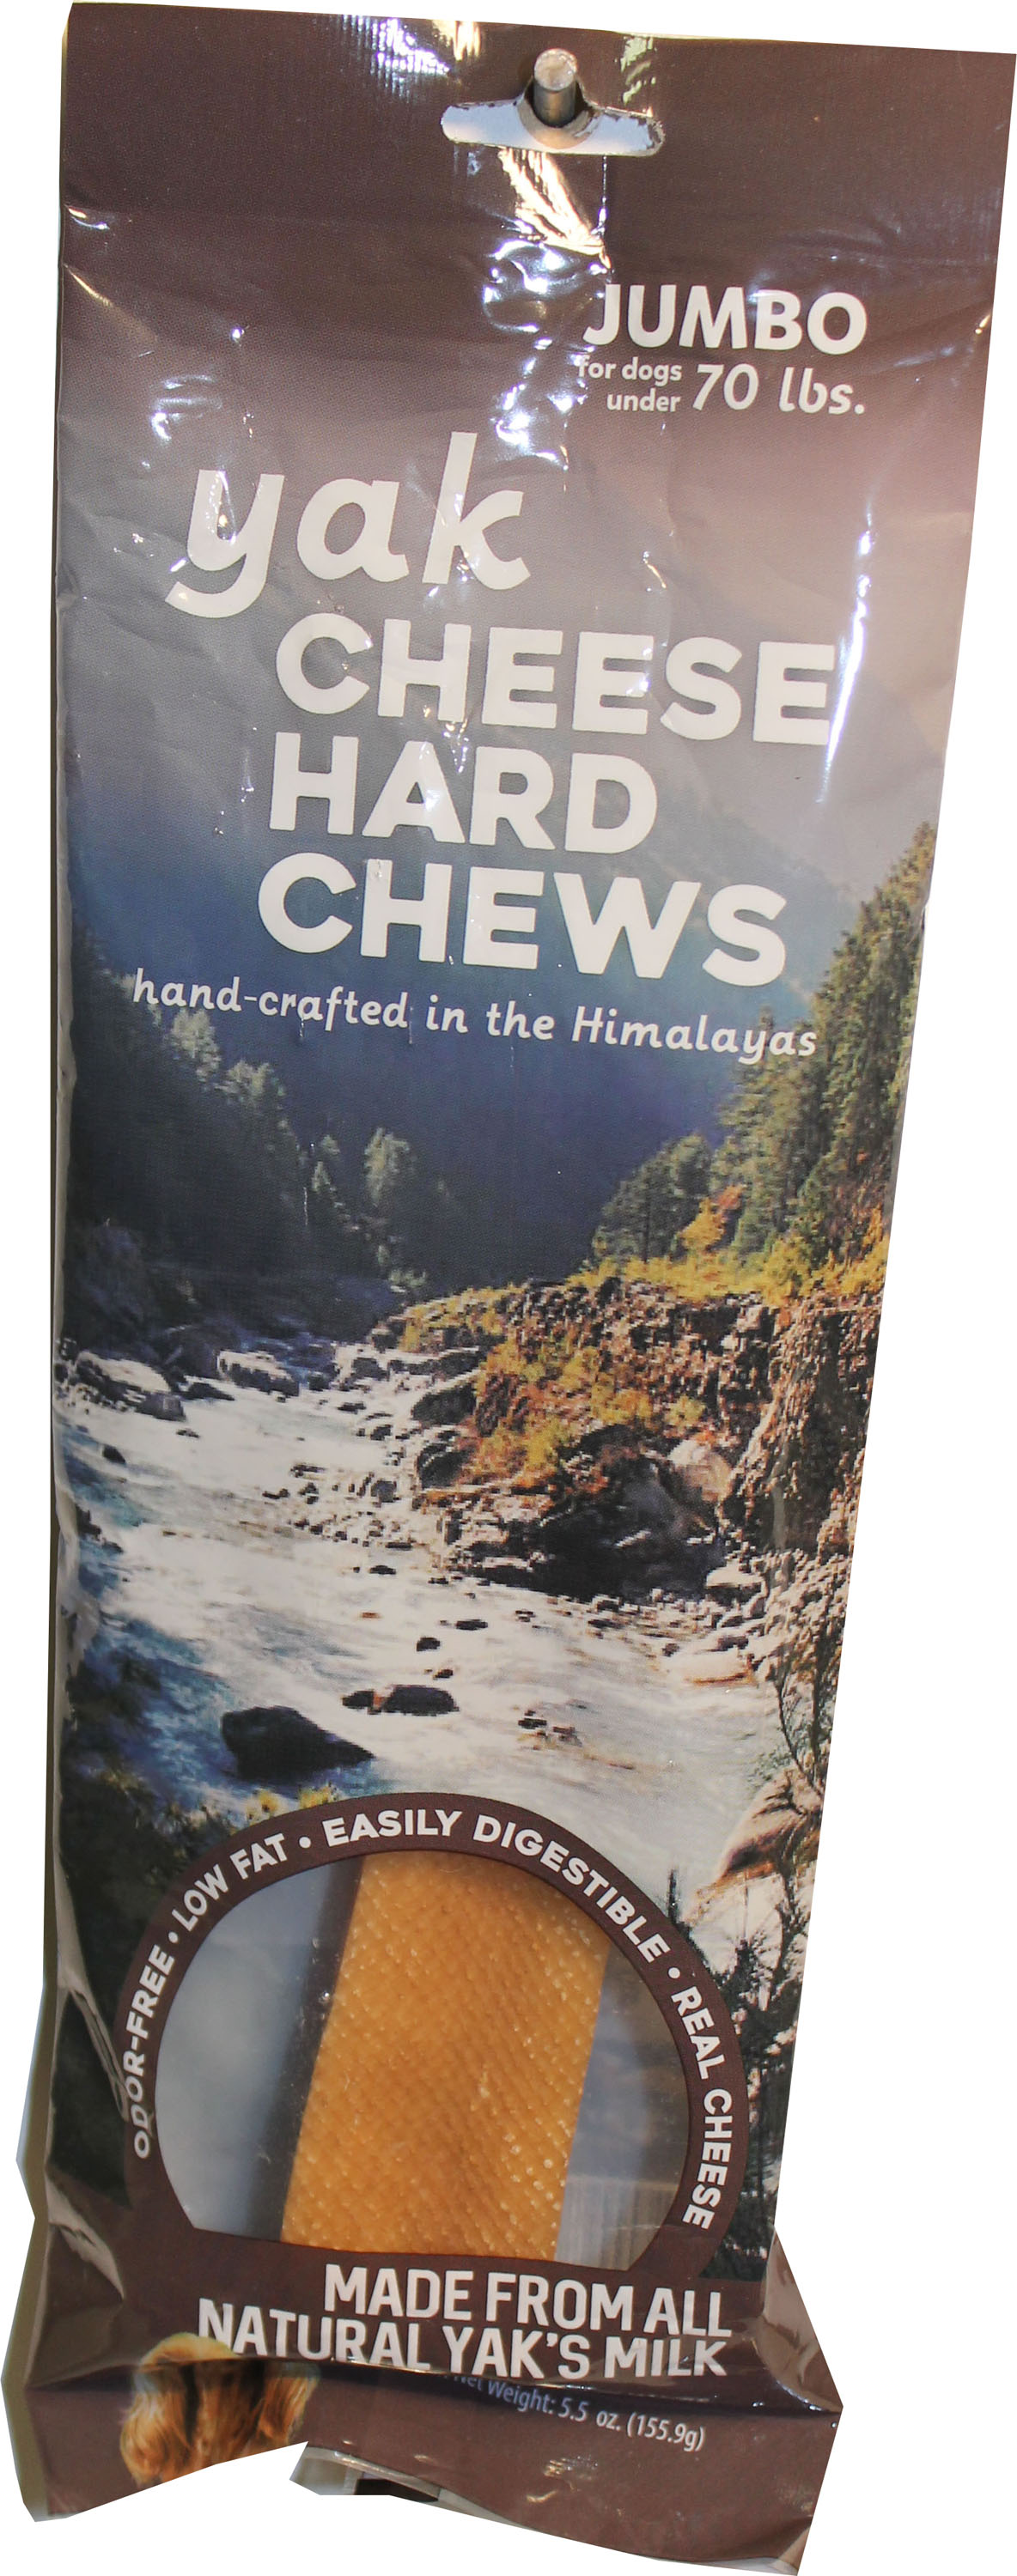 Best Buy Bones Himalayan Yak Cheese Hard Chews Dog Treats, Jumbo